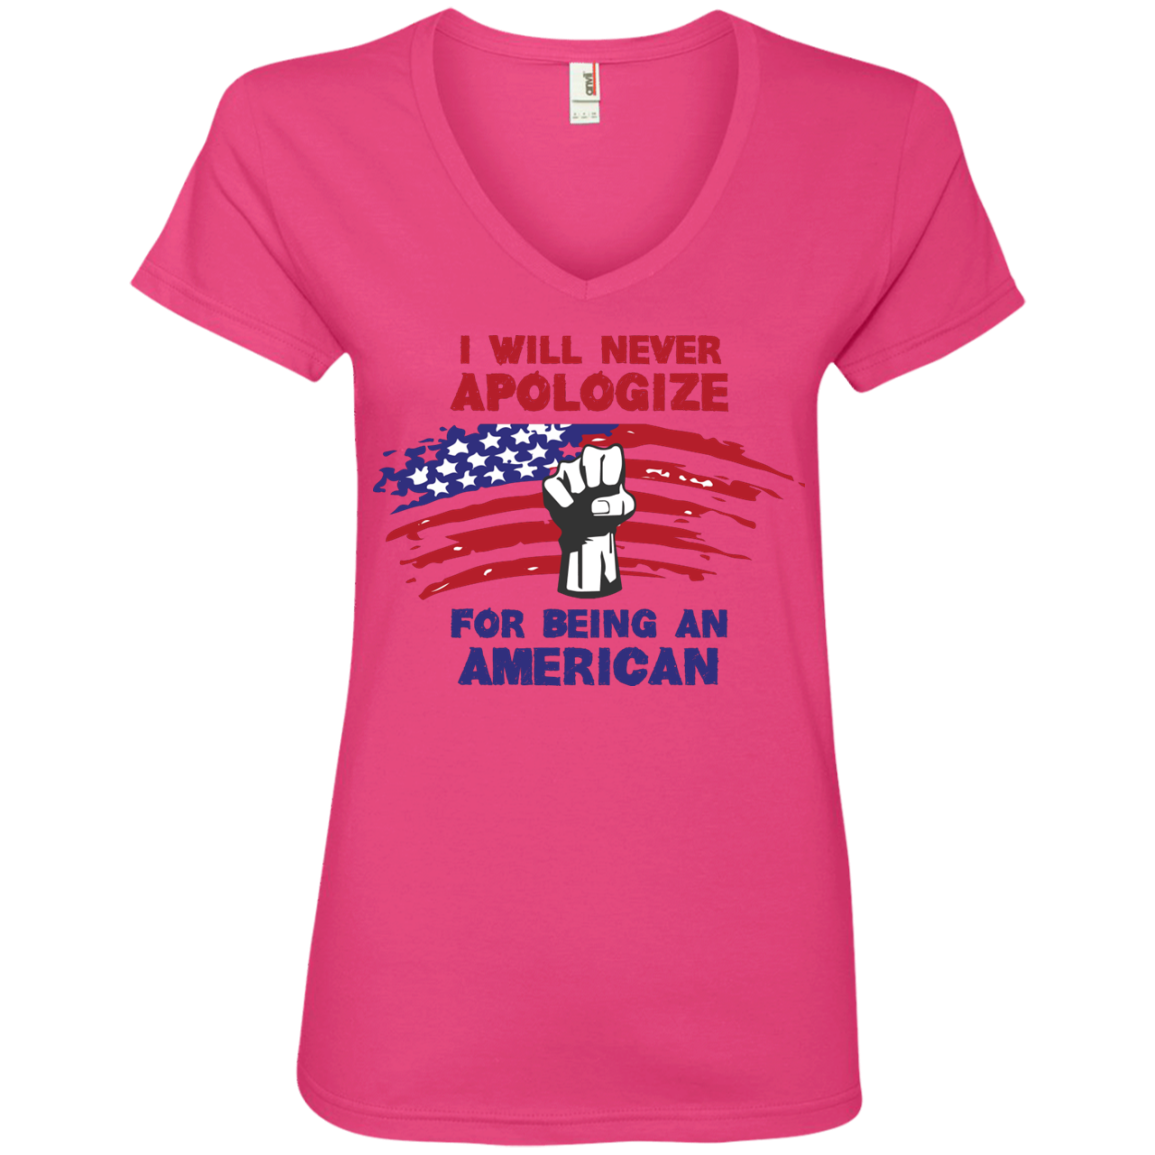 Never Apologize American - Ladies' V-Neck Tee - Monday Monday